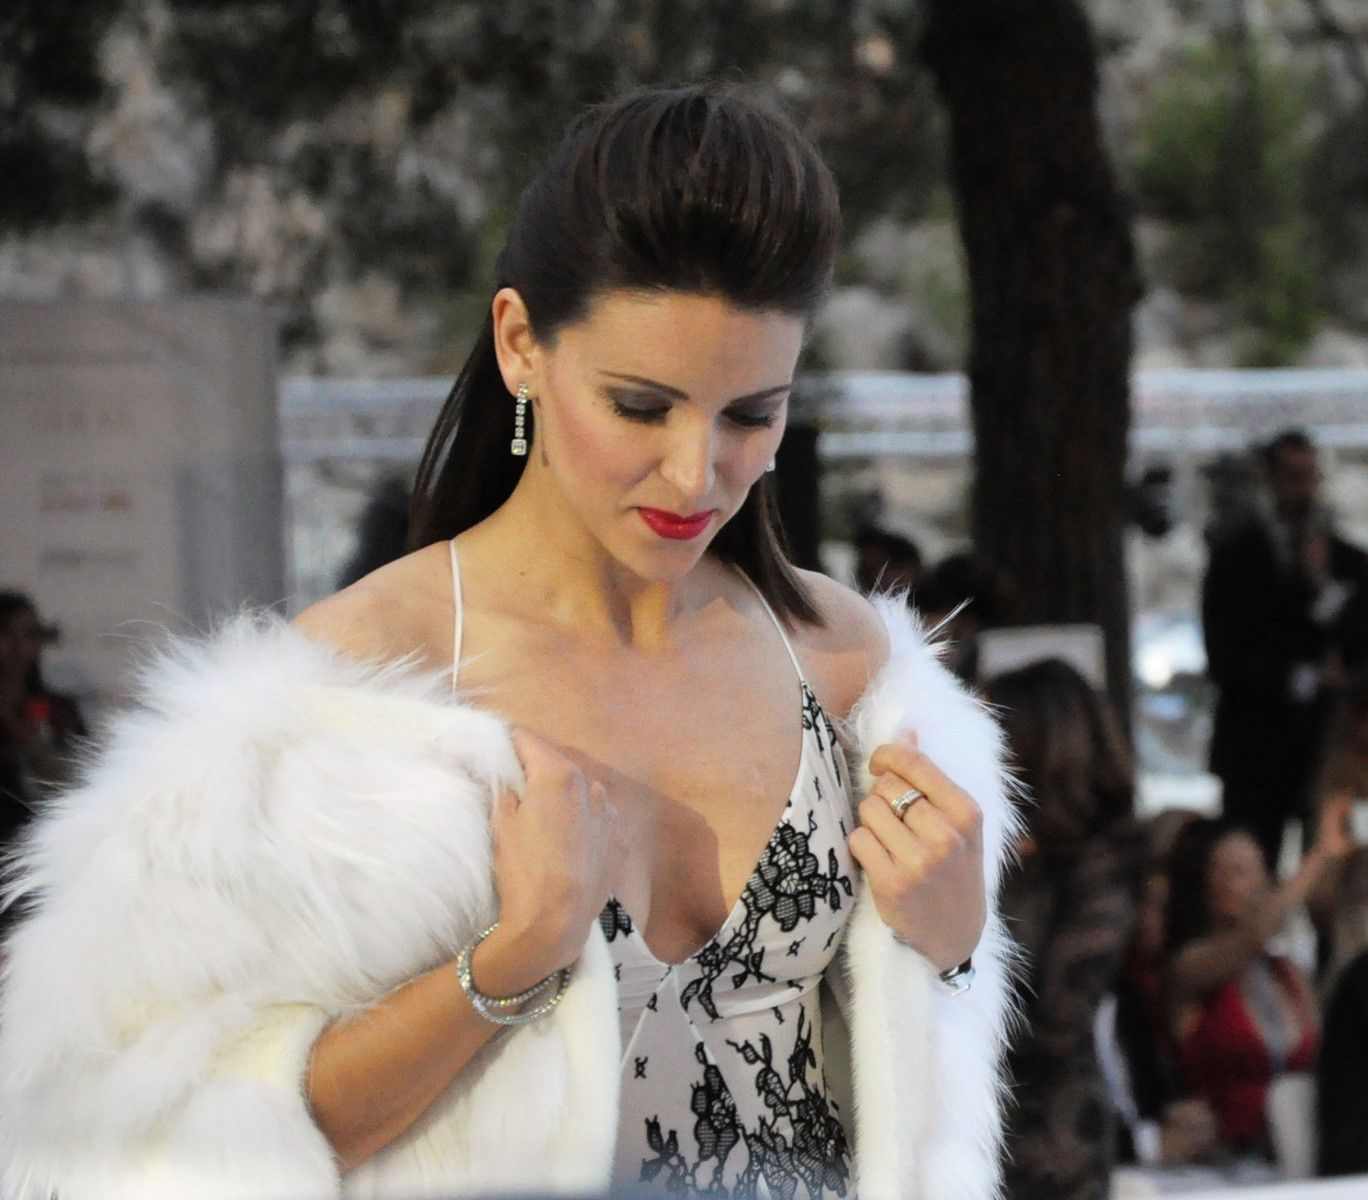 MONACO - AMBER LOUNGE FASHION 2015 : 1st DAY